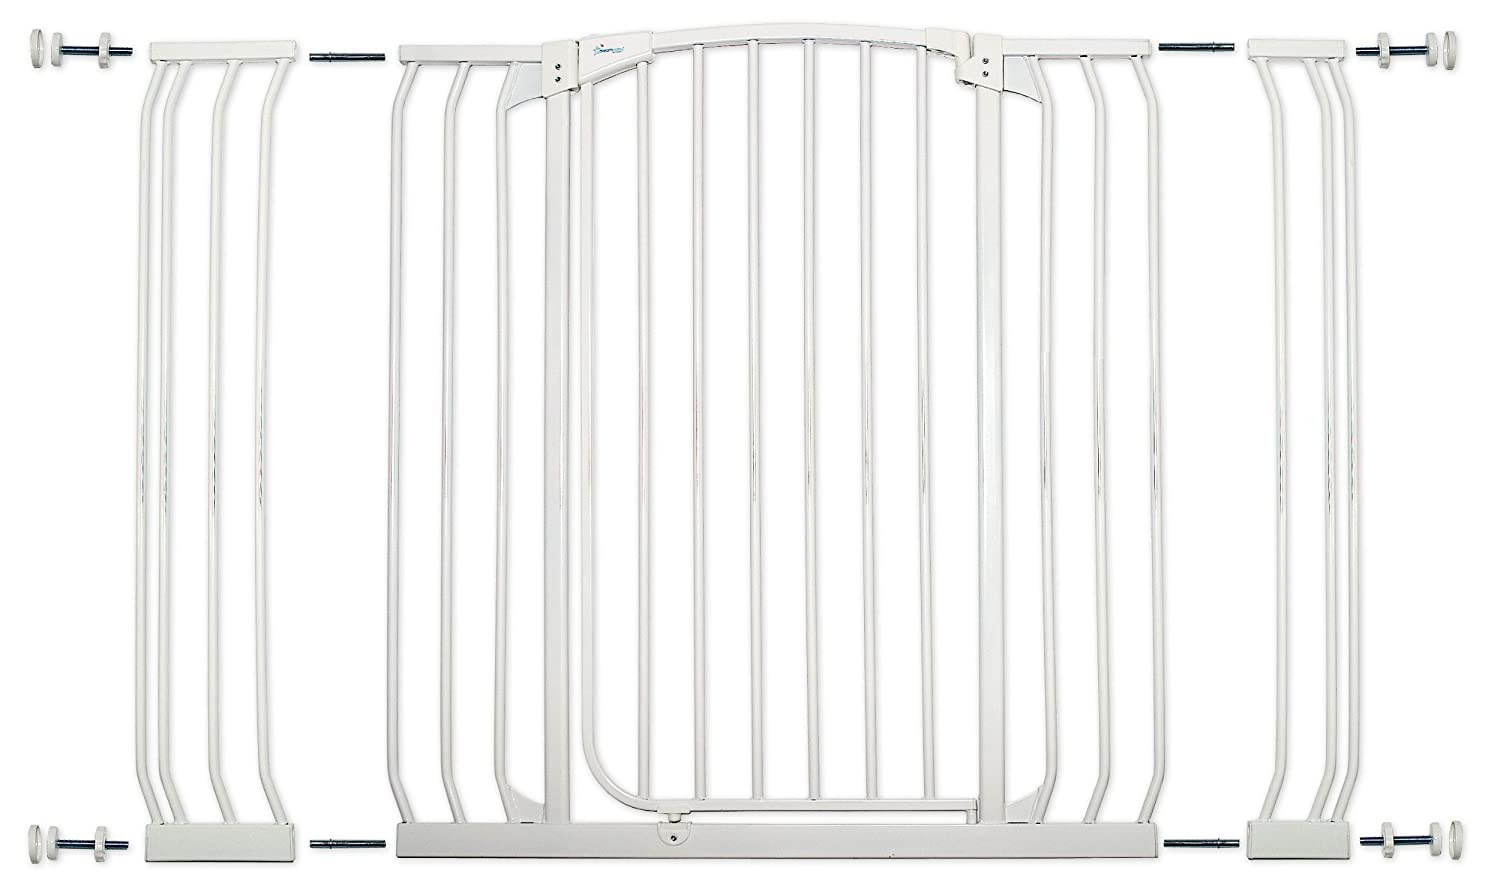 B000F1OQPO Dreambaby Chelsea Extra Tall and Wide Auto Close Security Gate in White with Extensions 810sip9mX7L